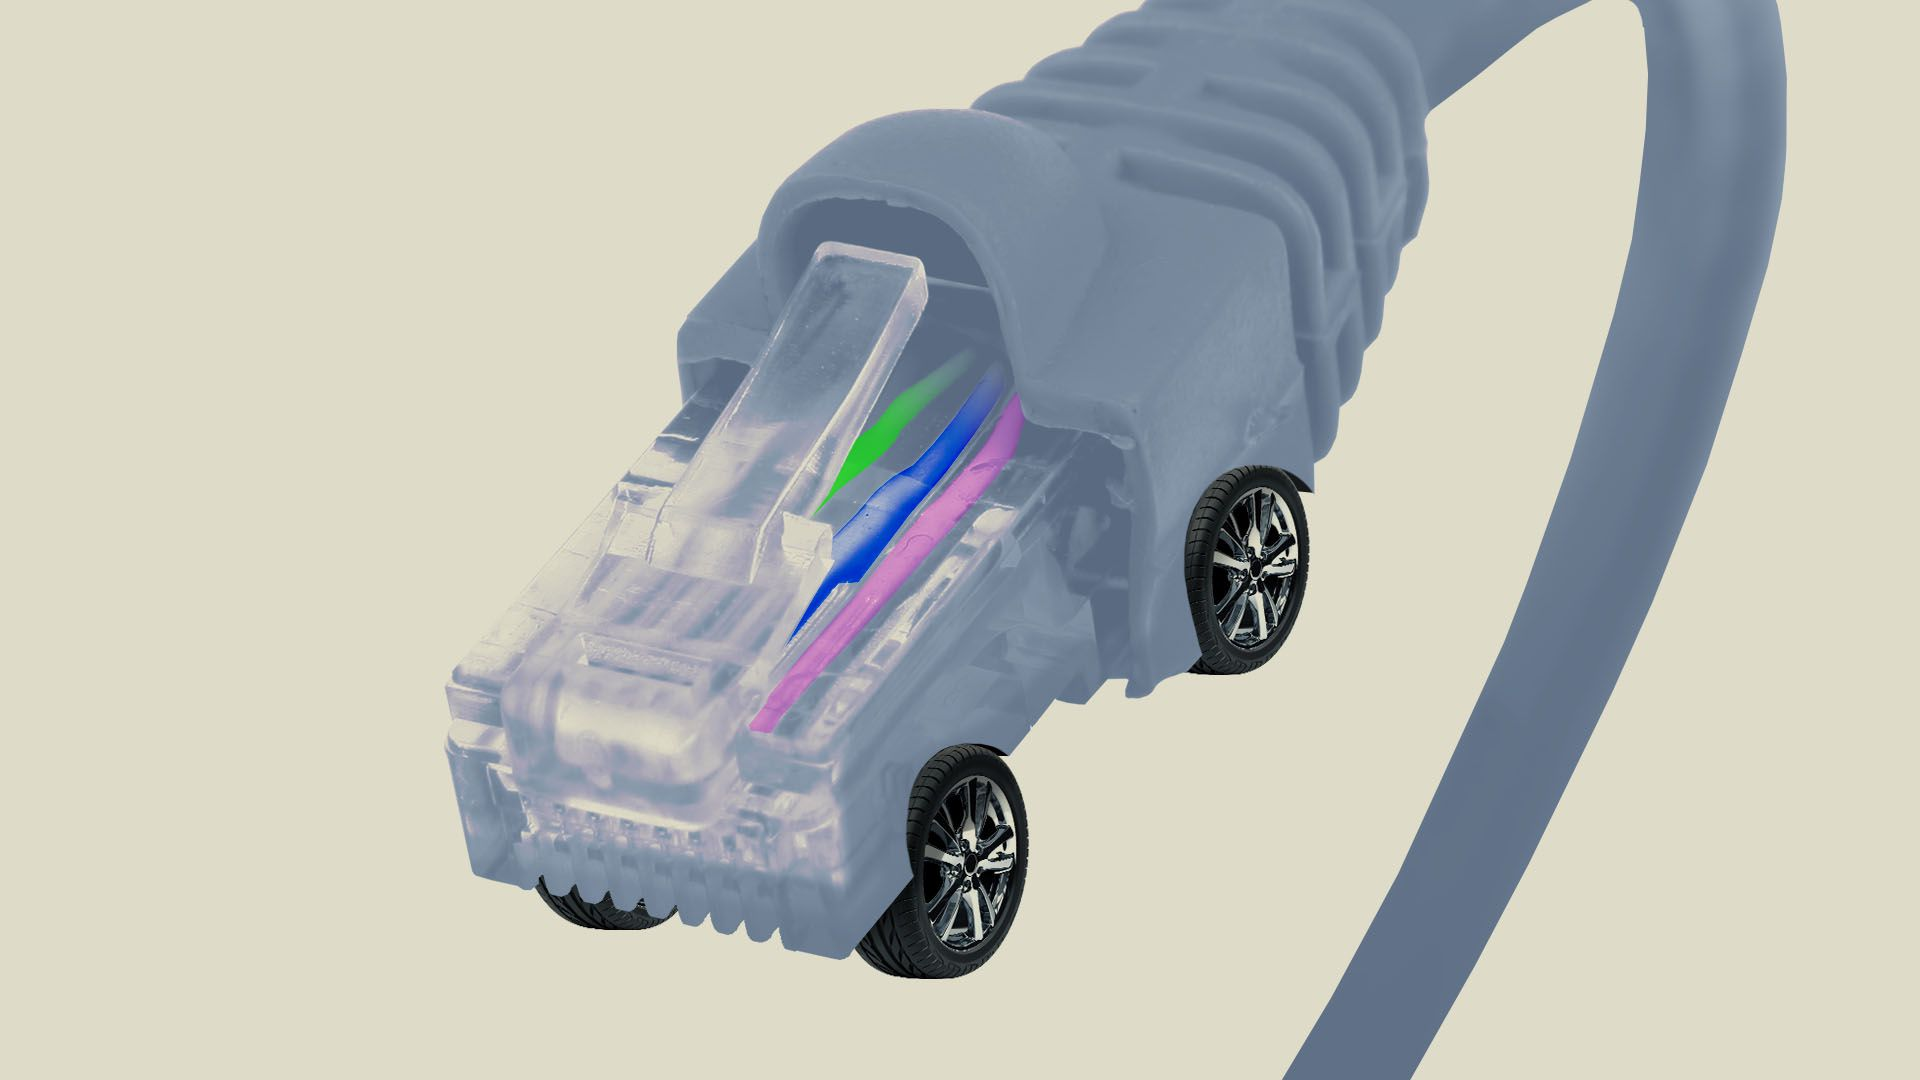 Illustration of an ethernet cable with car wheels